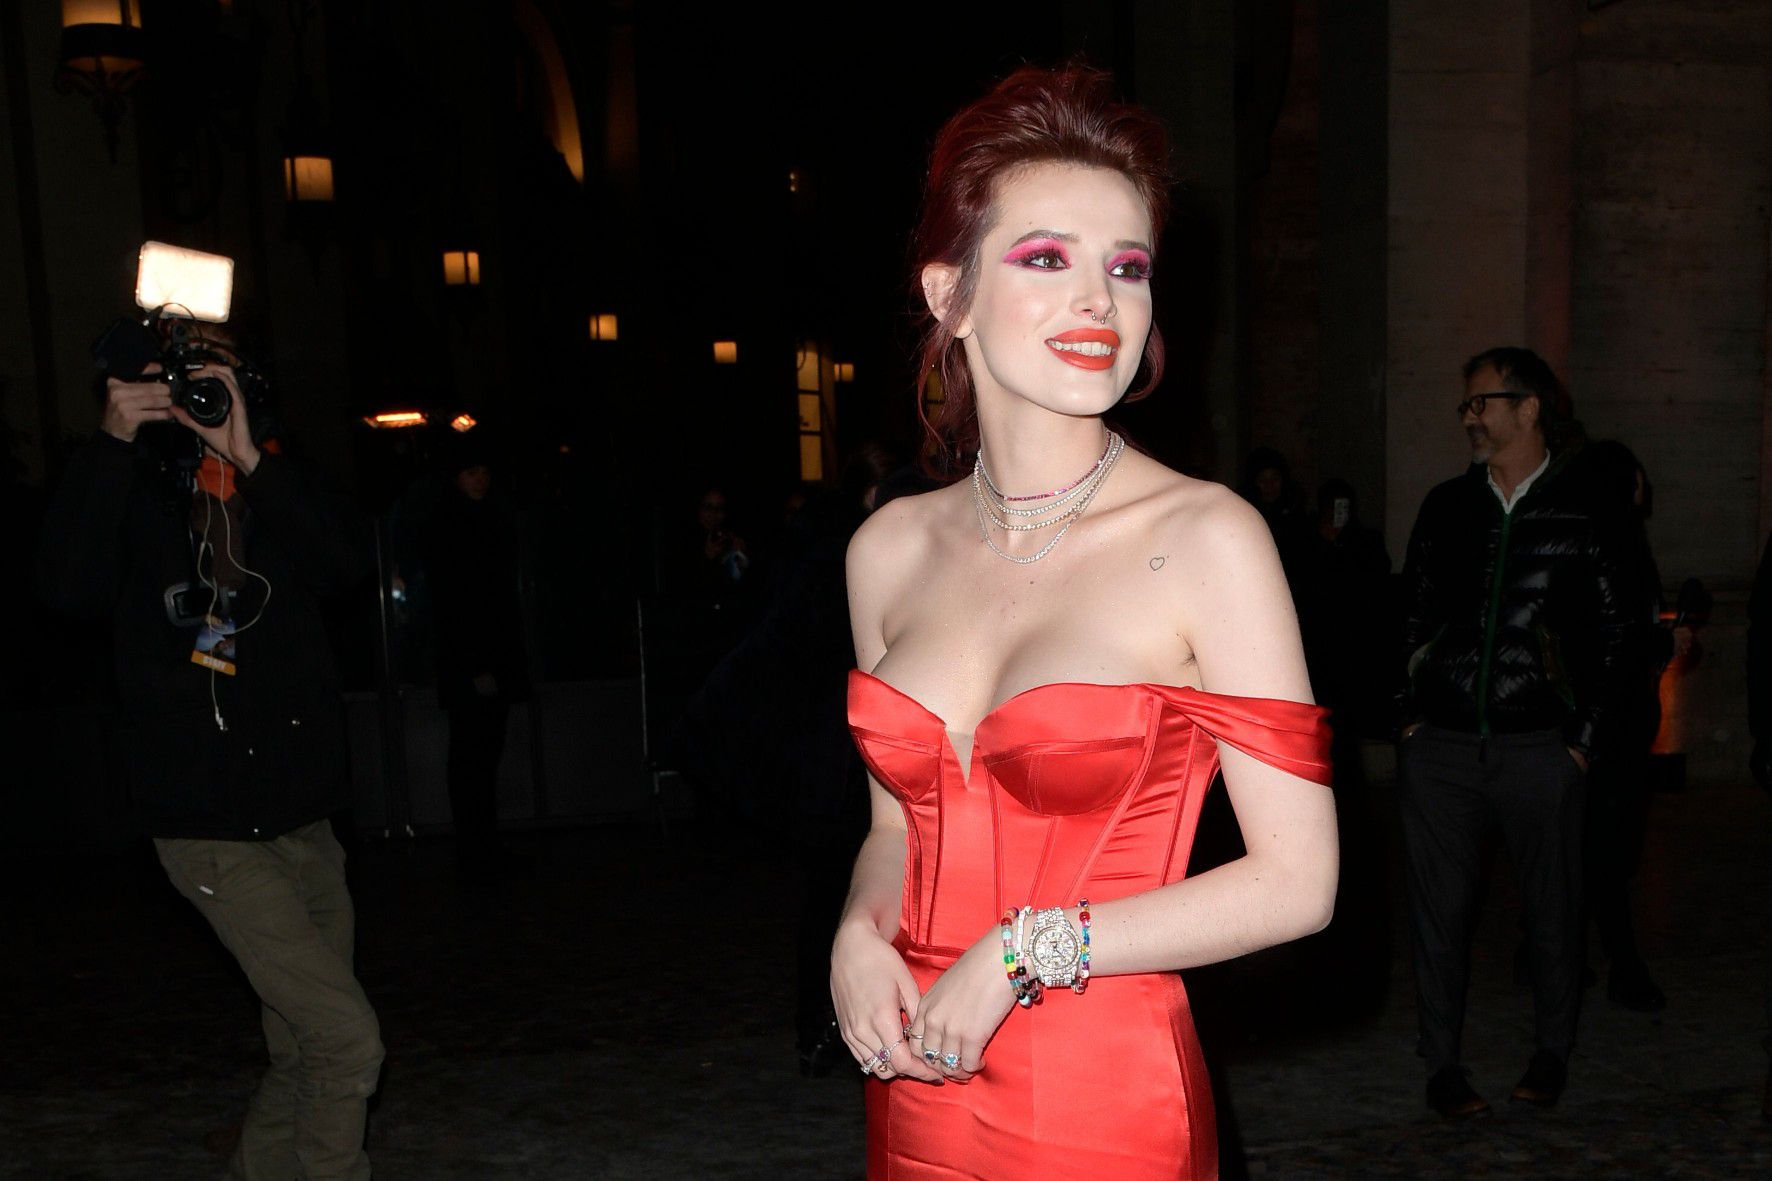 bella-thorne-deep-cleavage-at-midnight-run-premiere-in-rome-3495